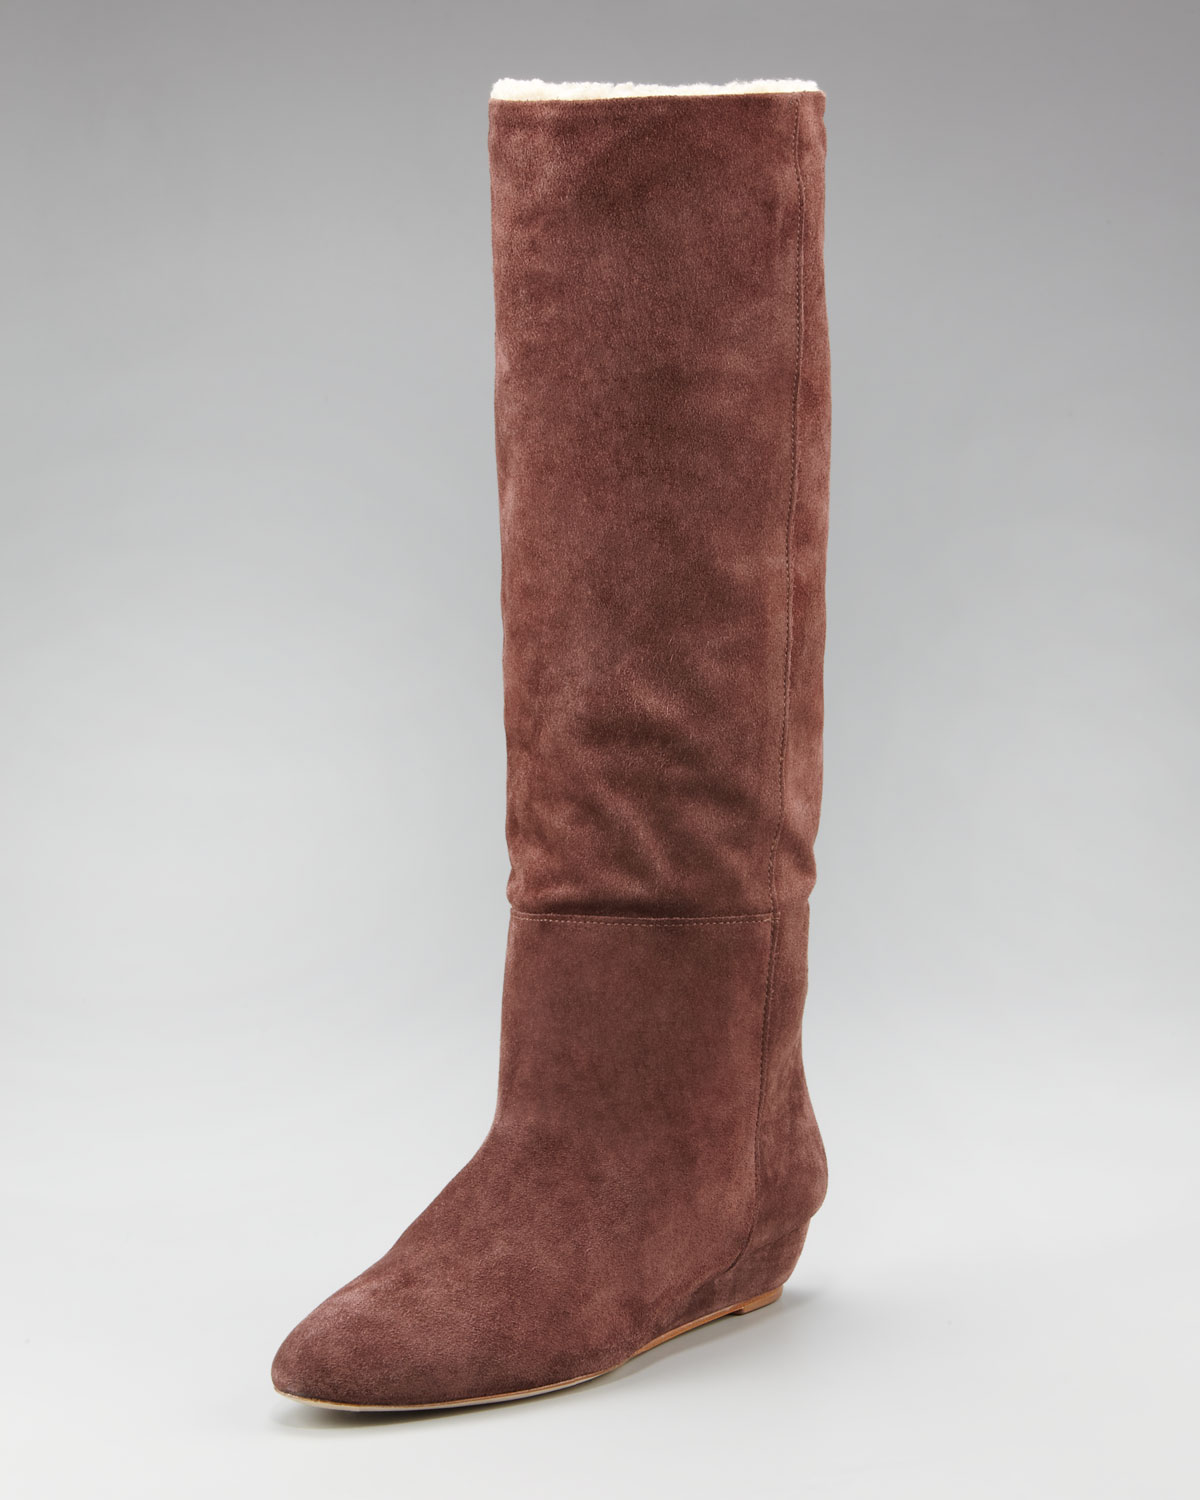 loeffler randall faux shearling suede boot in brown